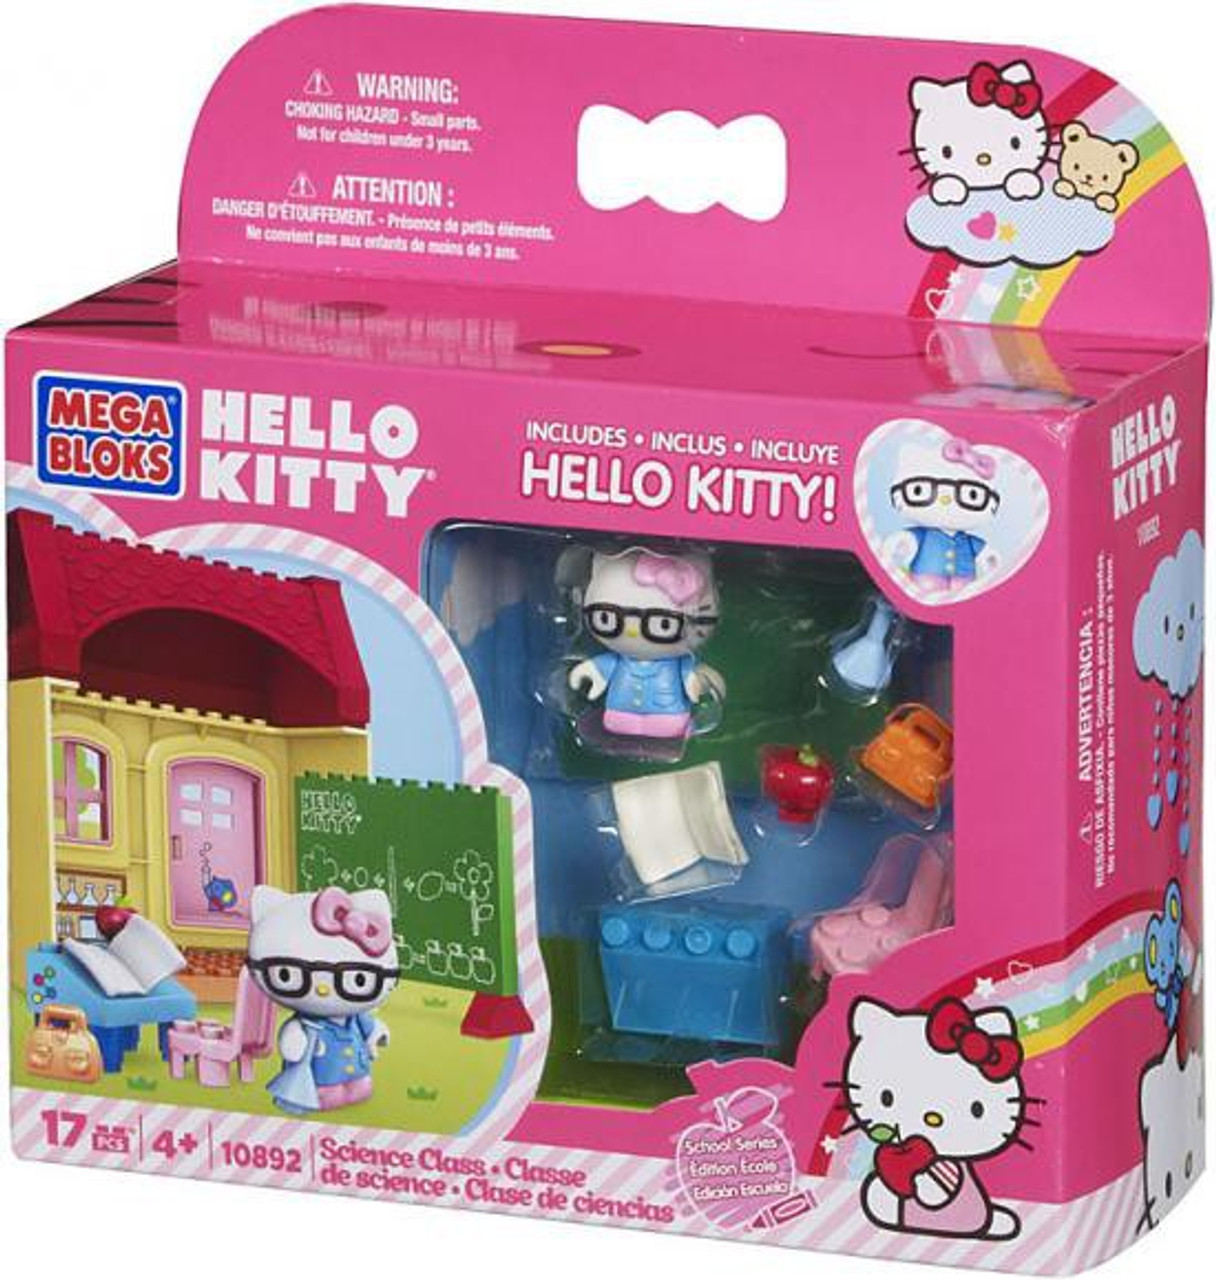 Mega Bloks Hello Kitty School Series Science Class Set #10892